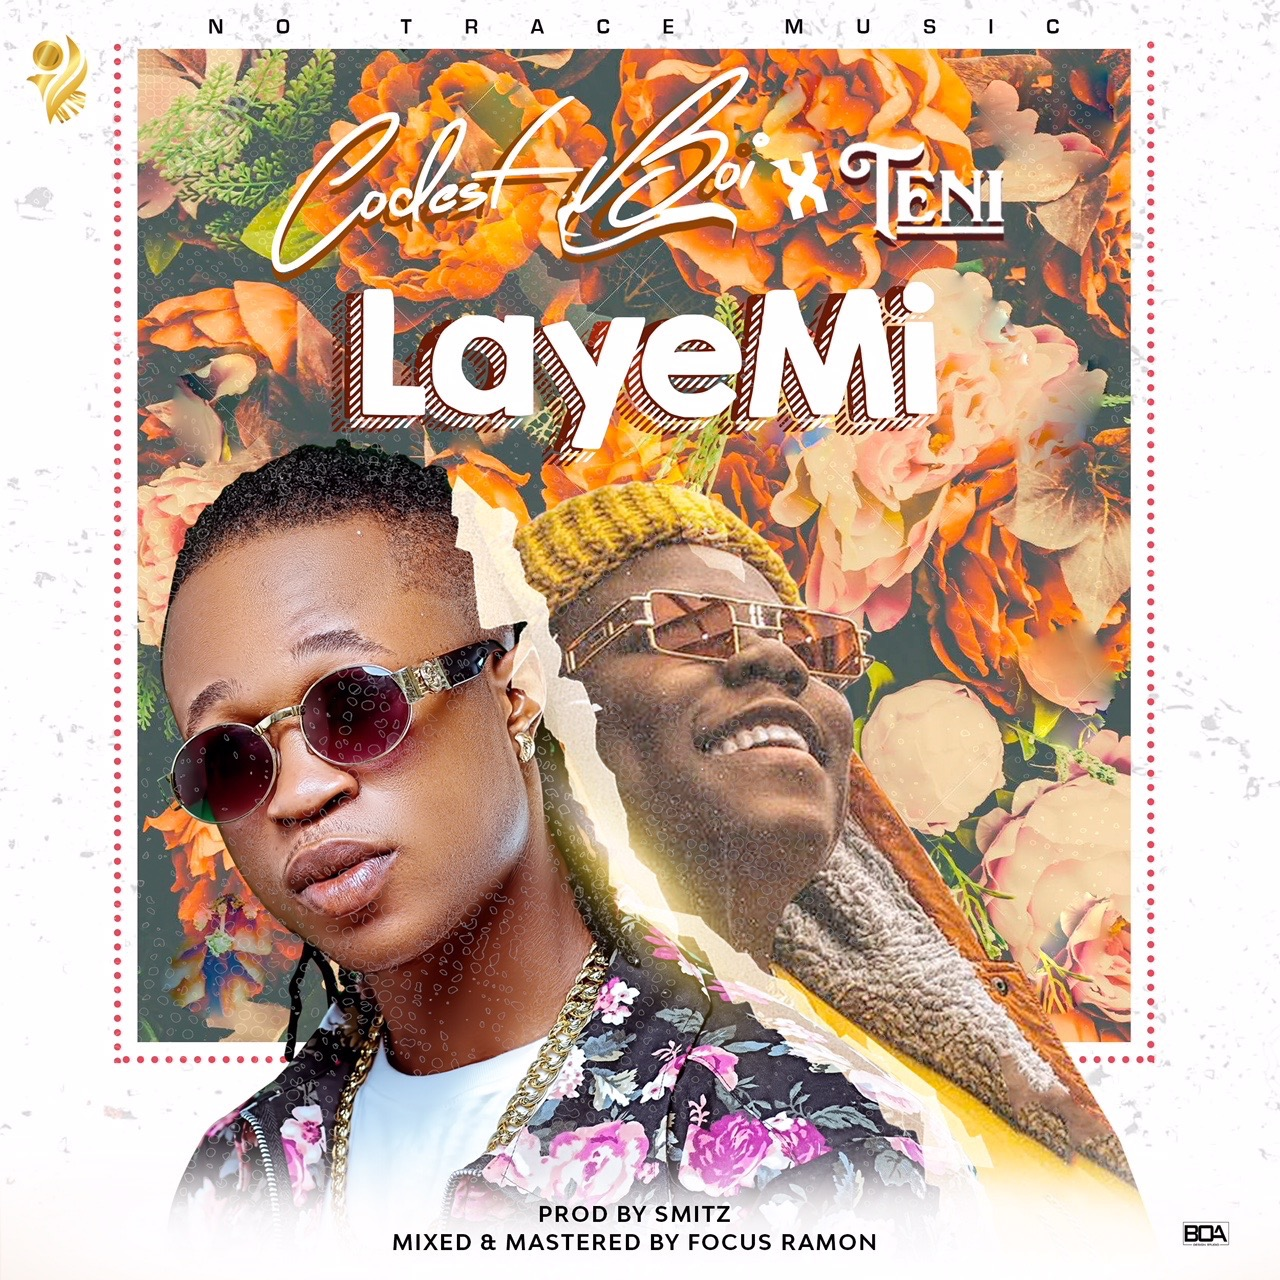 Music Download]: Codest Boi ft Teni - Laye Mi (Prod By Smitz